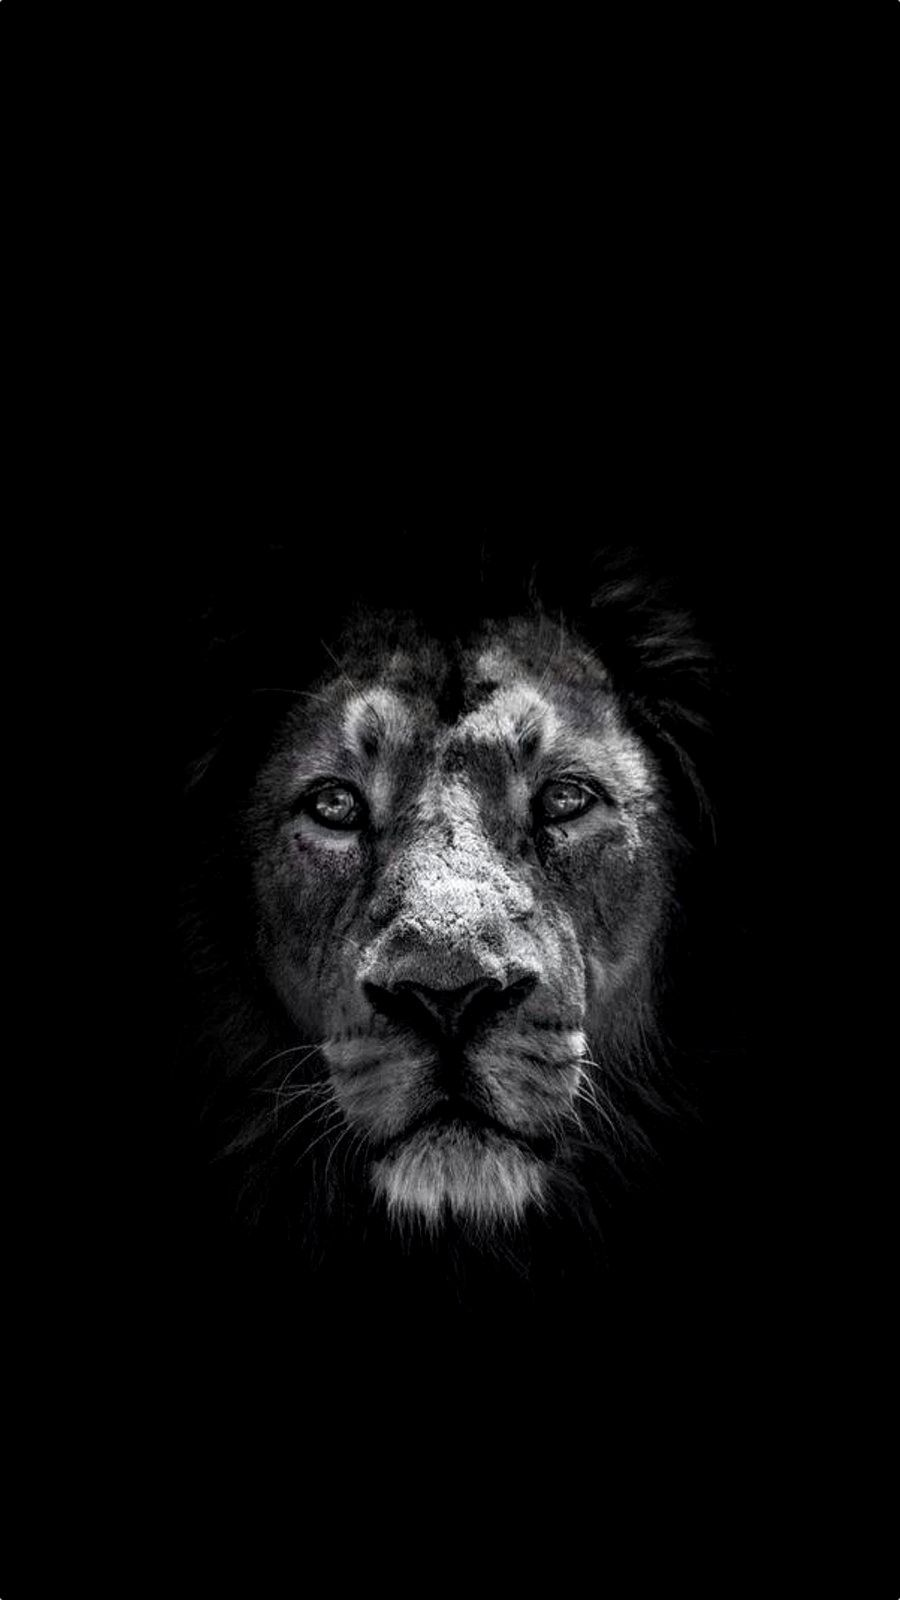 Iphone 6 Plus Lion Black Wallpaper Wallpaper In 2019 Pinterest